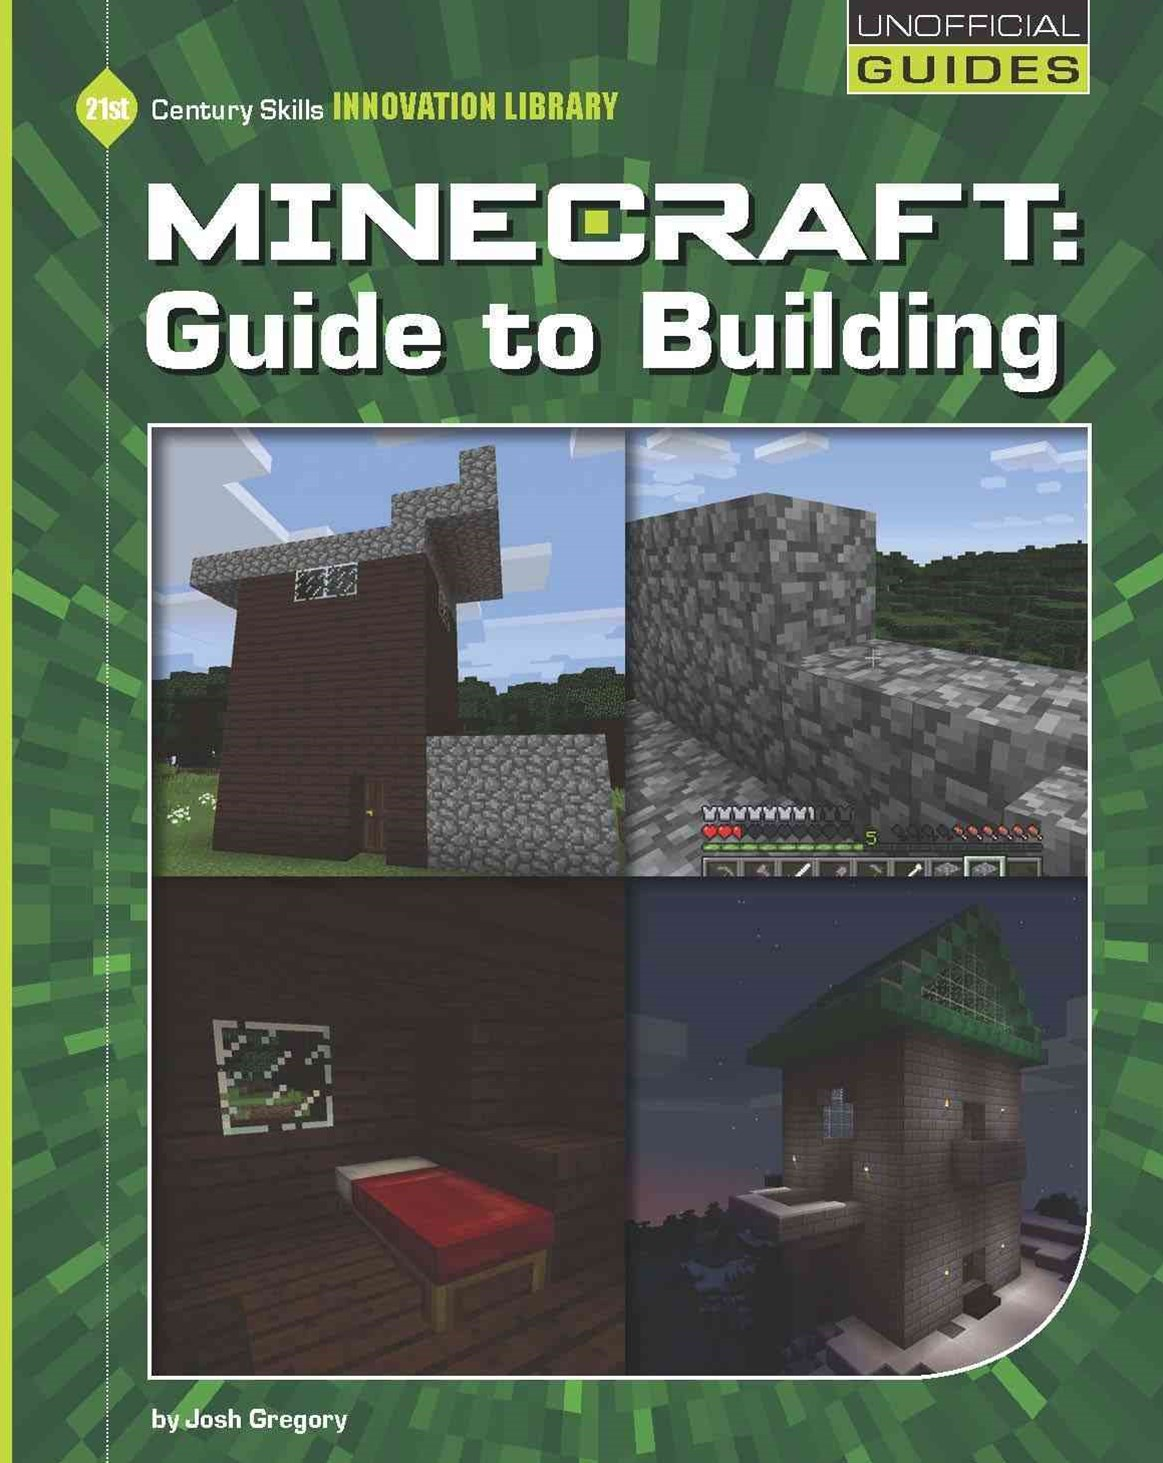 21st Century Skills Innovation Library: Minecraft: Guide to Building